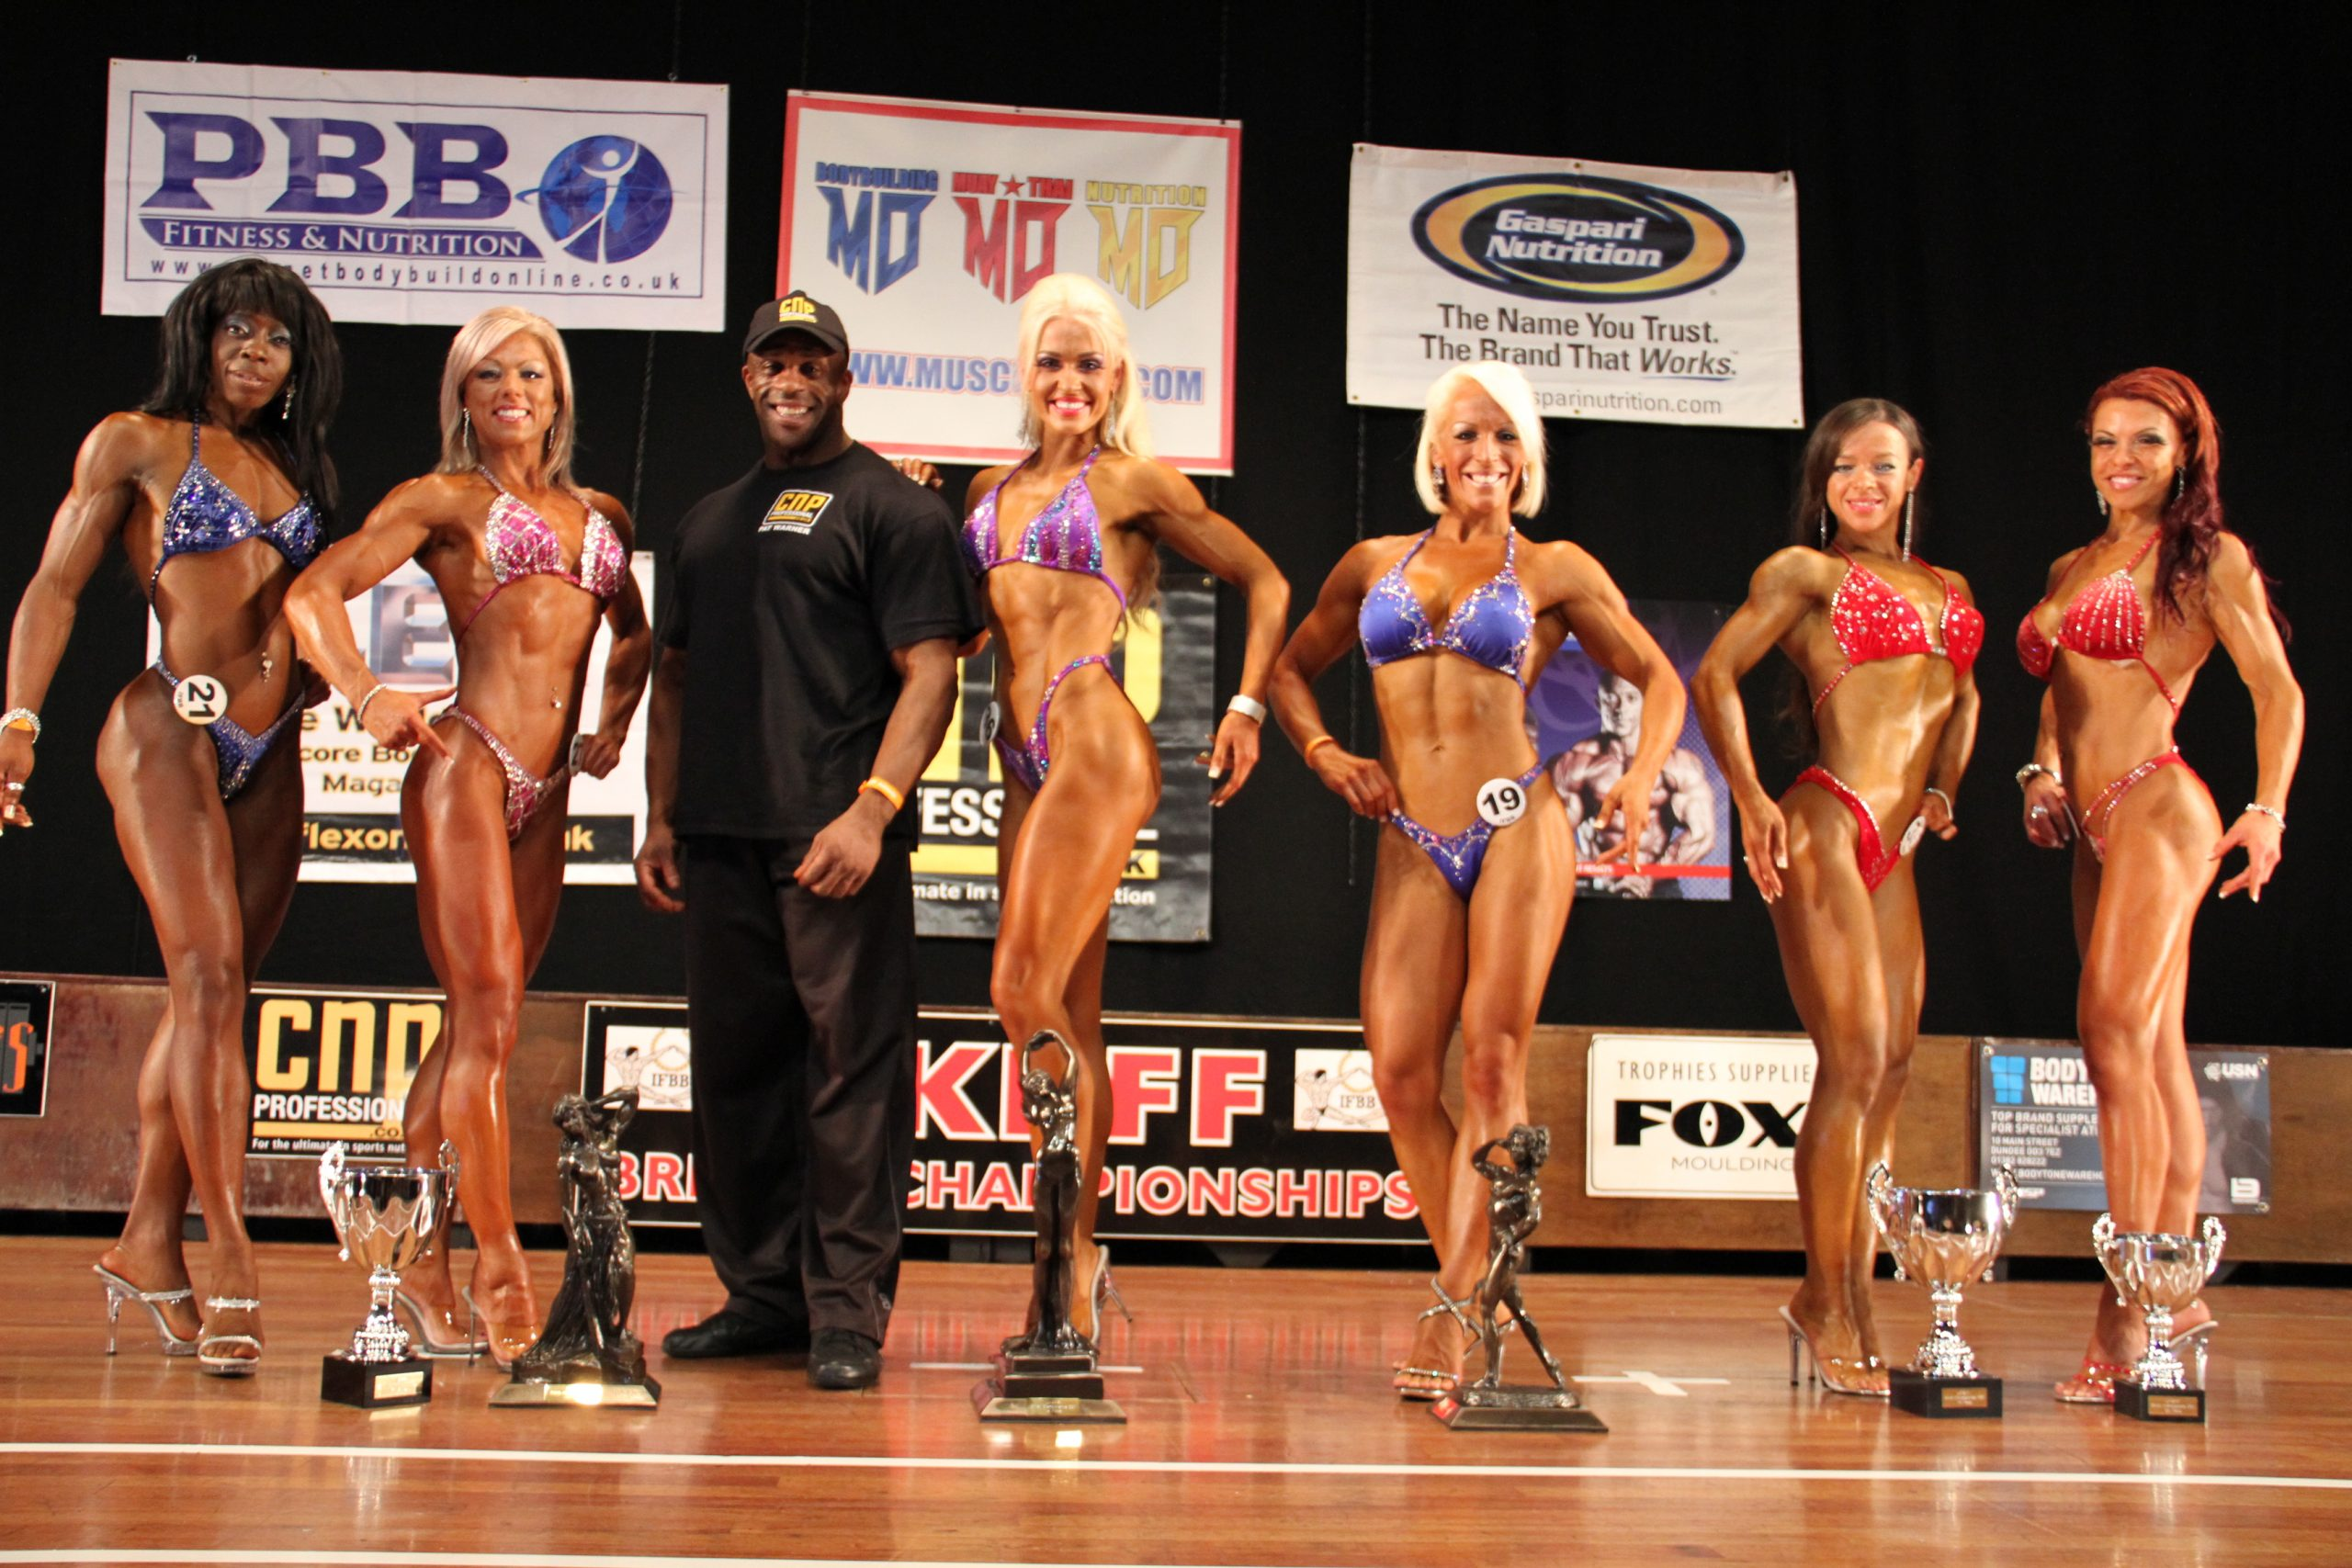 Bodyfitness karen norris top 6